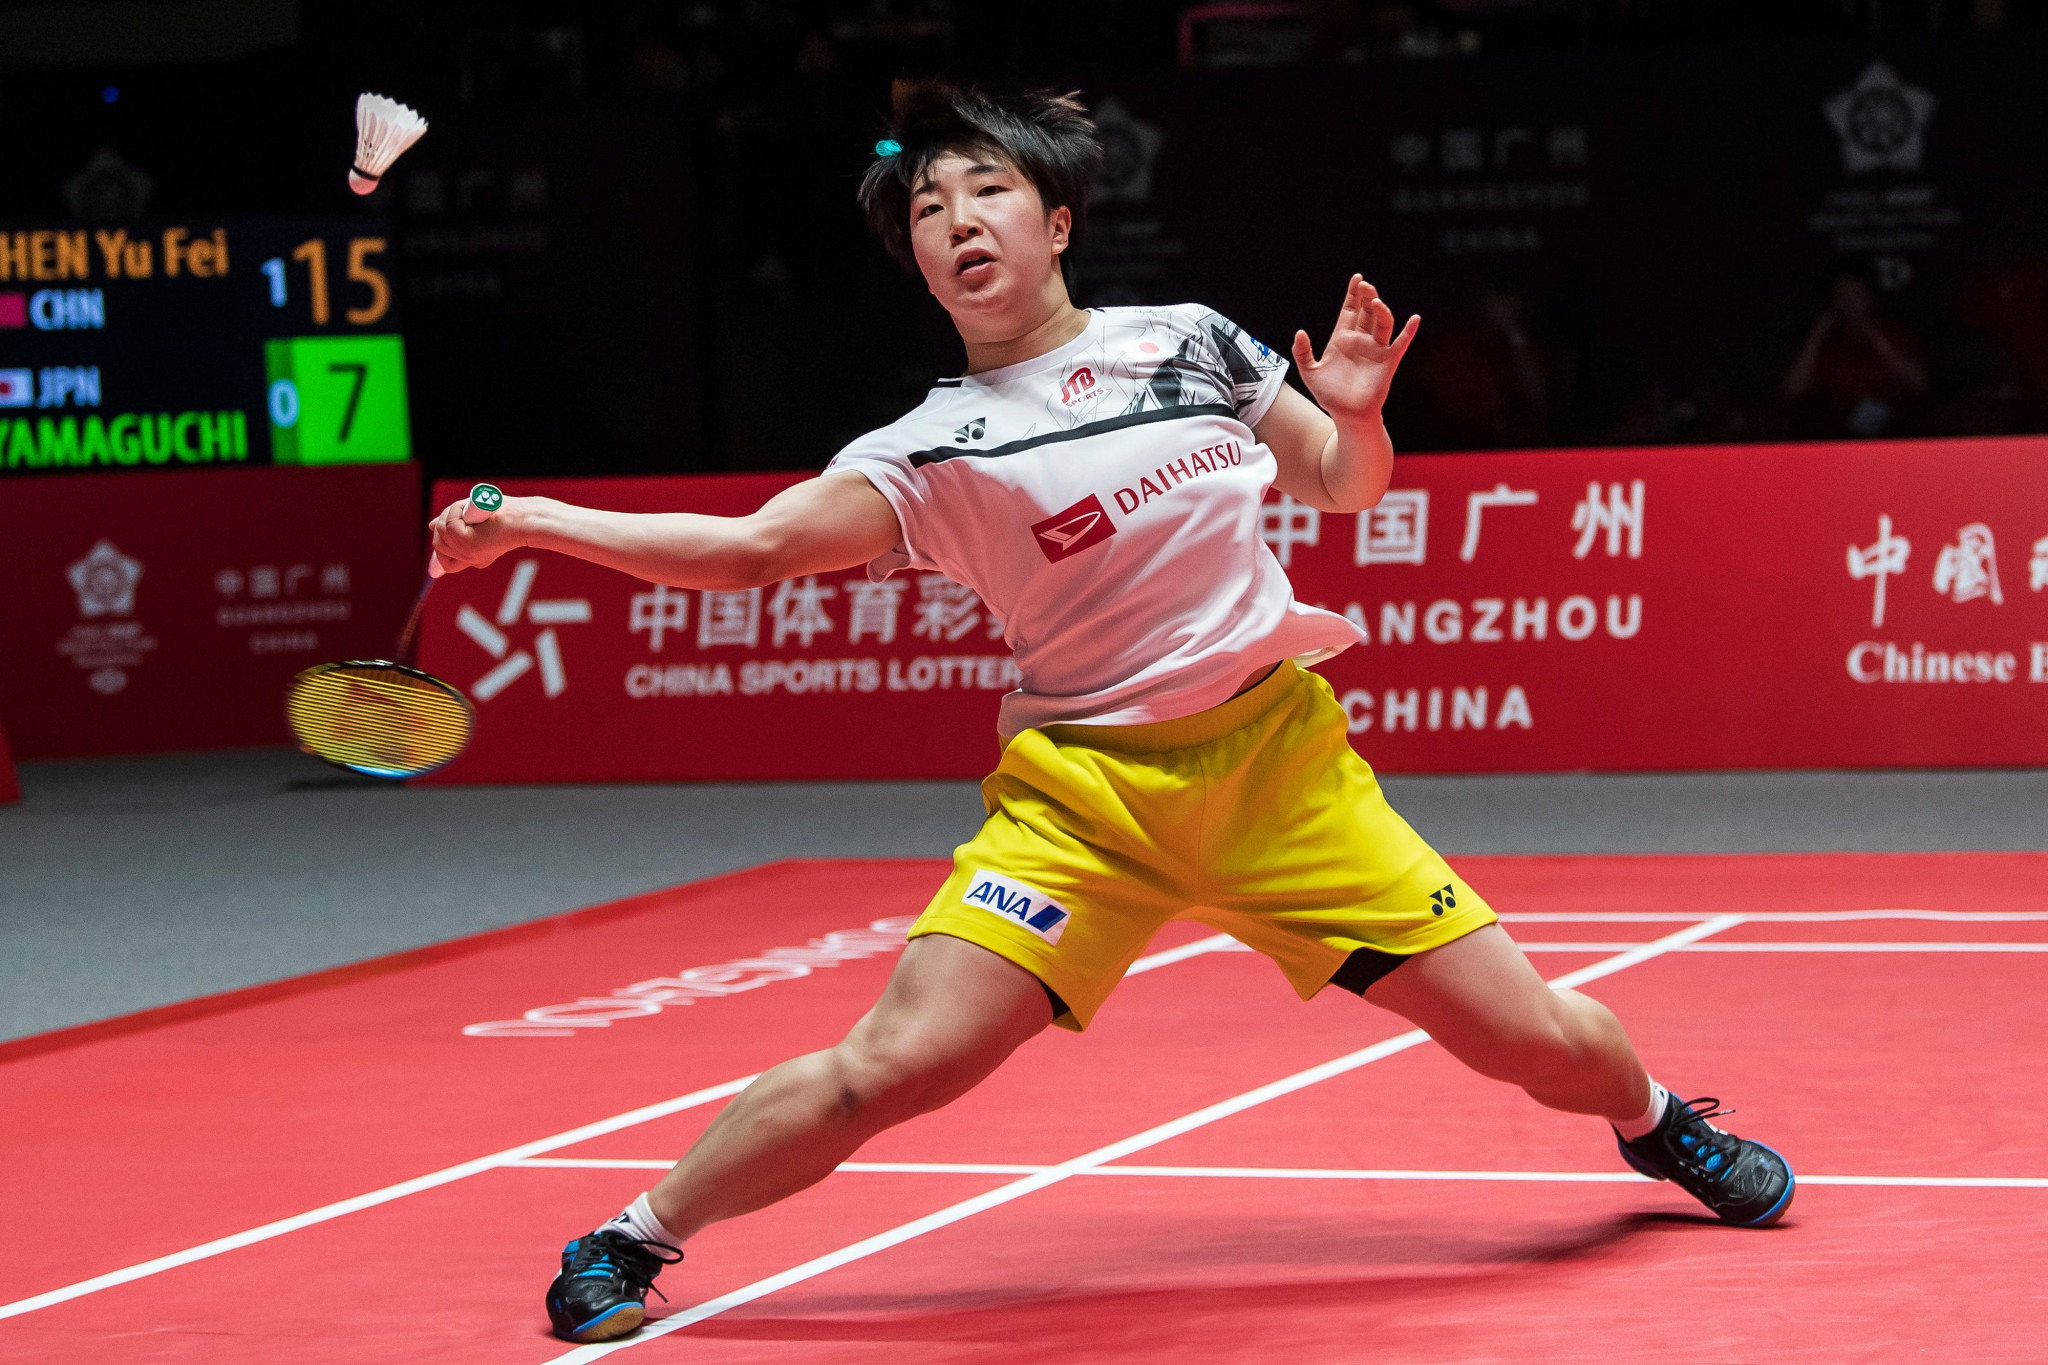 Yamaguchi comes through in thrilling semi-final at BWF Thailand Masters